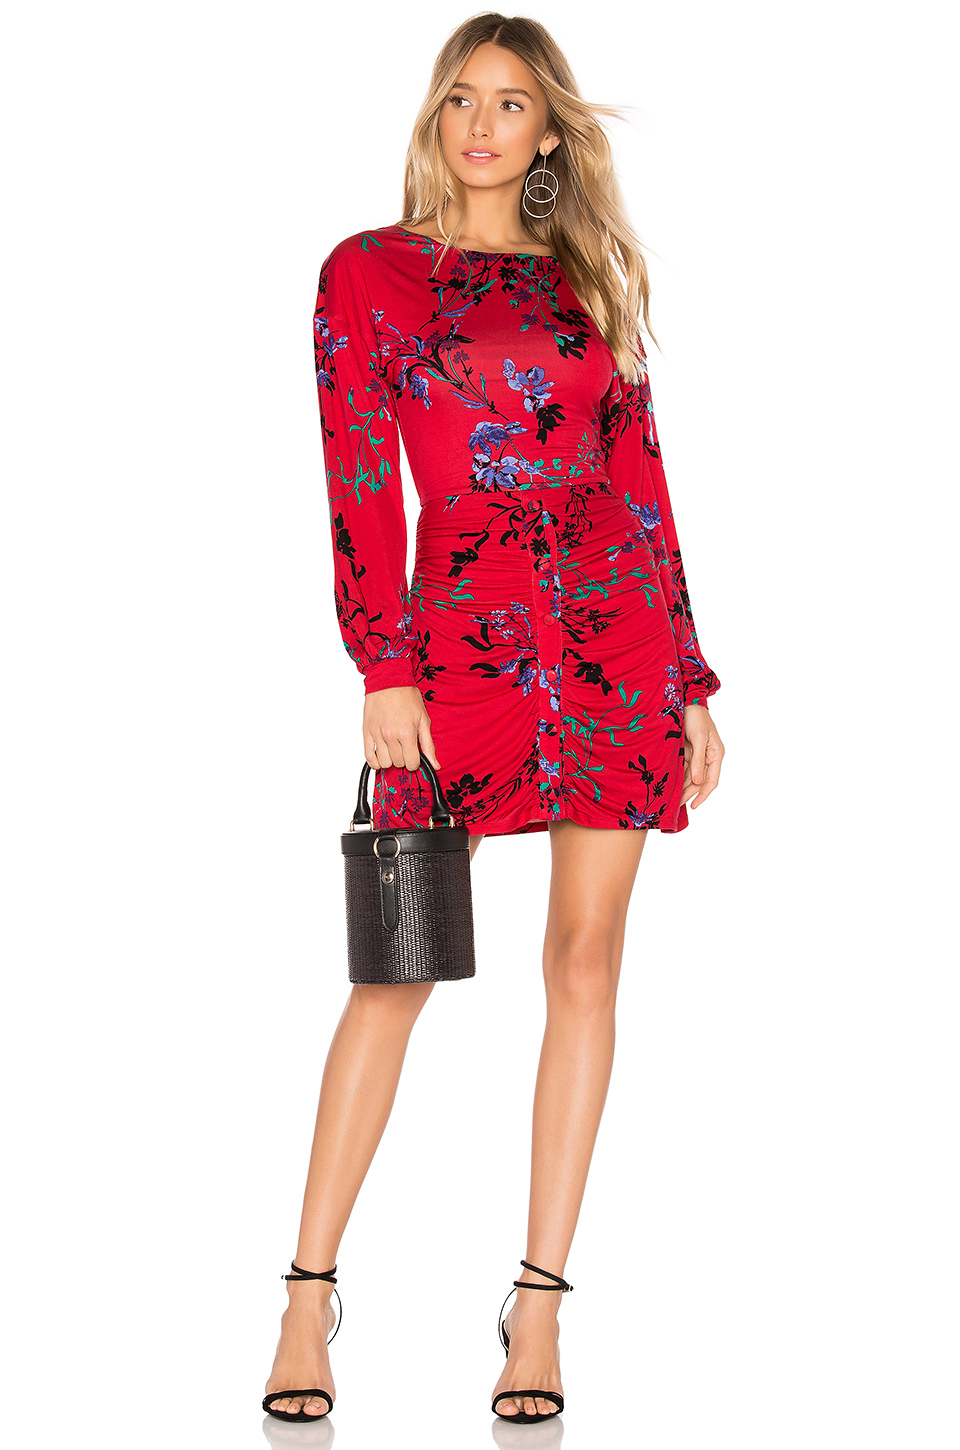 House of Harlow 1960 x REVOLVE Siri Dress in Red Fleur